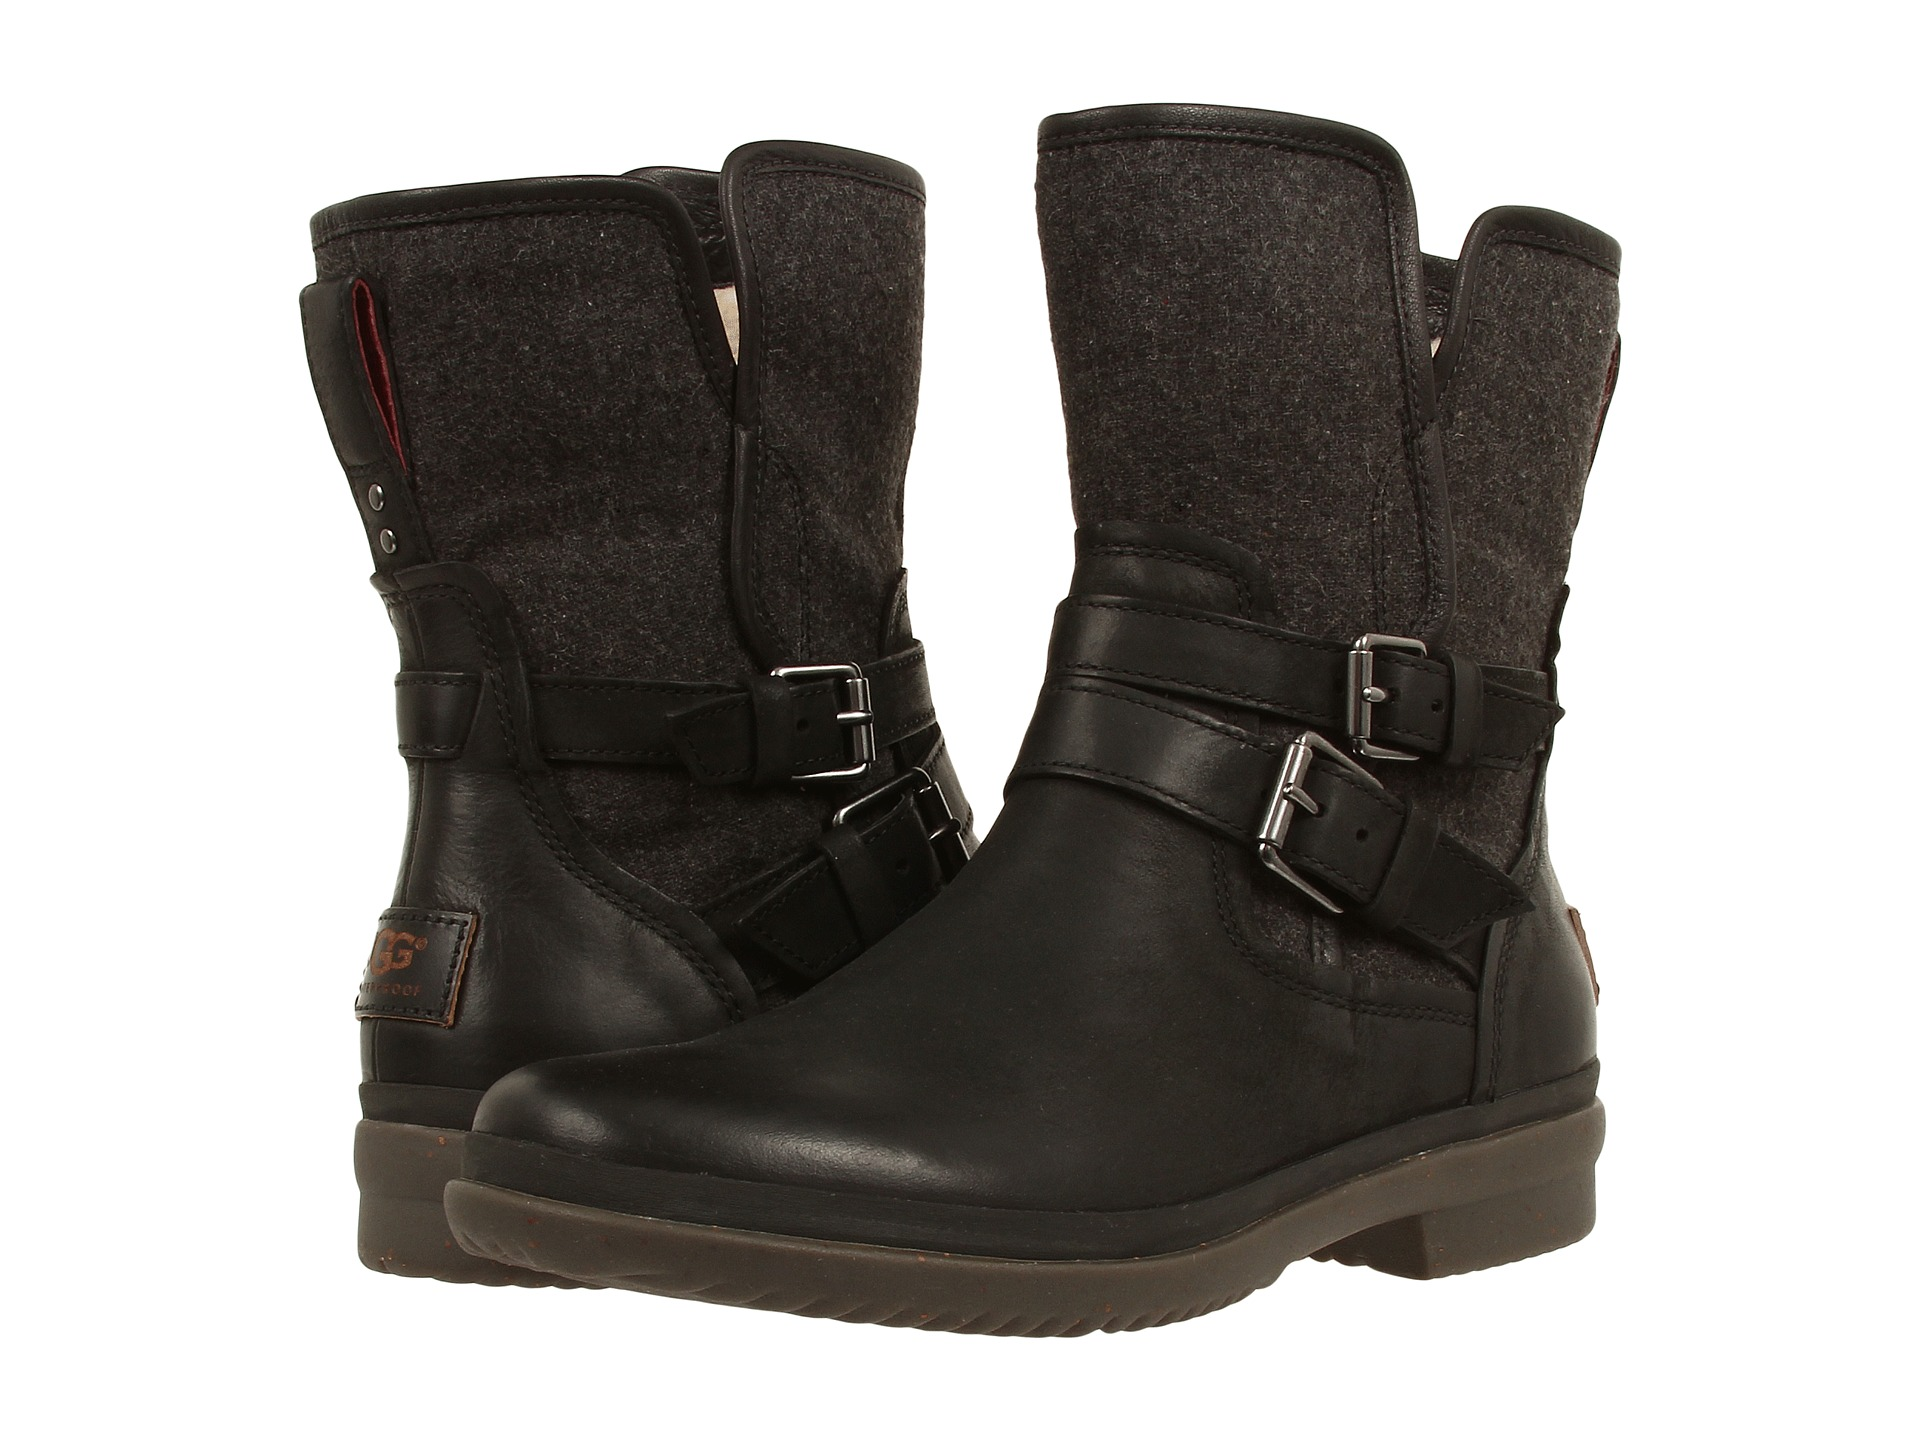 UGG Simmens - Zappos.com Free Shipping BOTH Ways